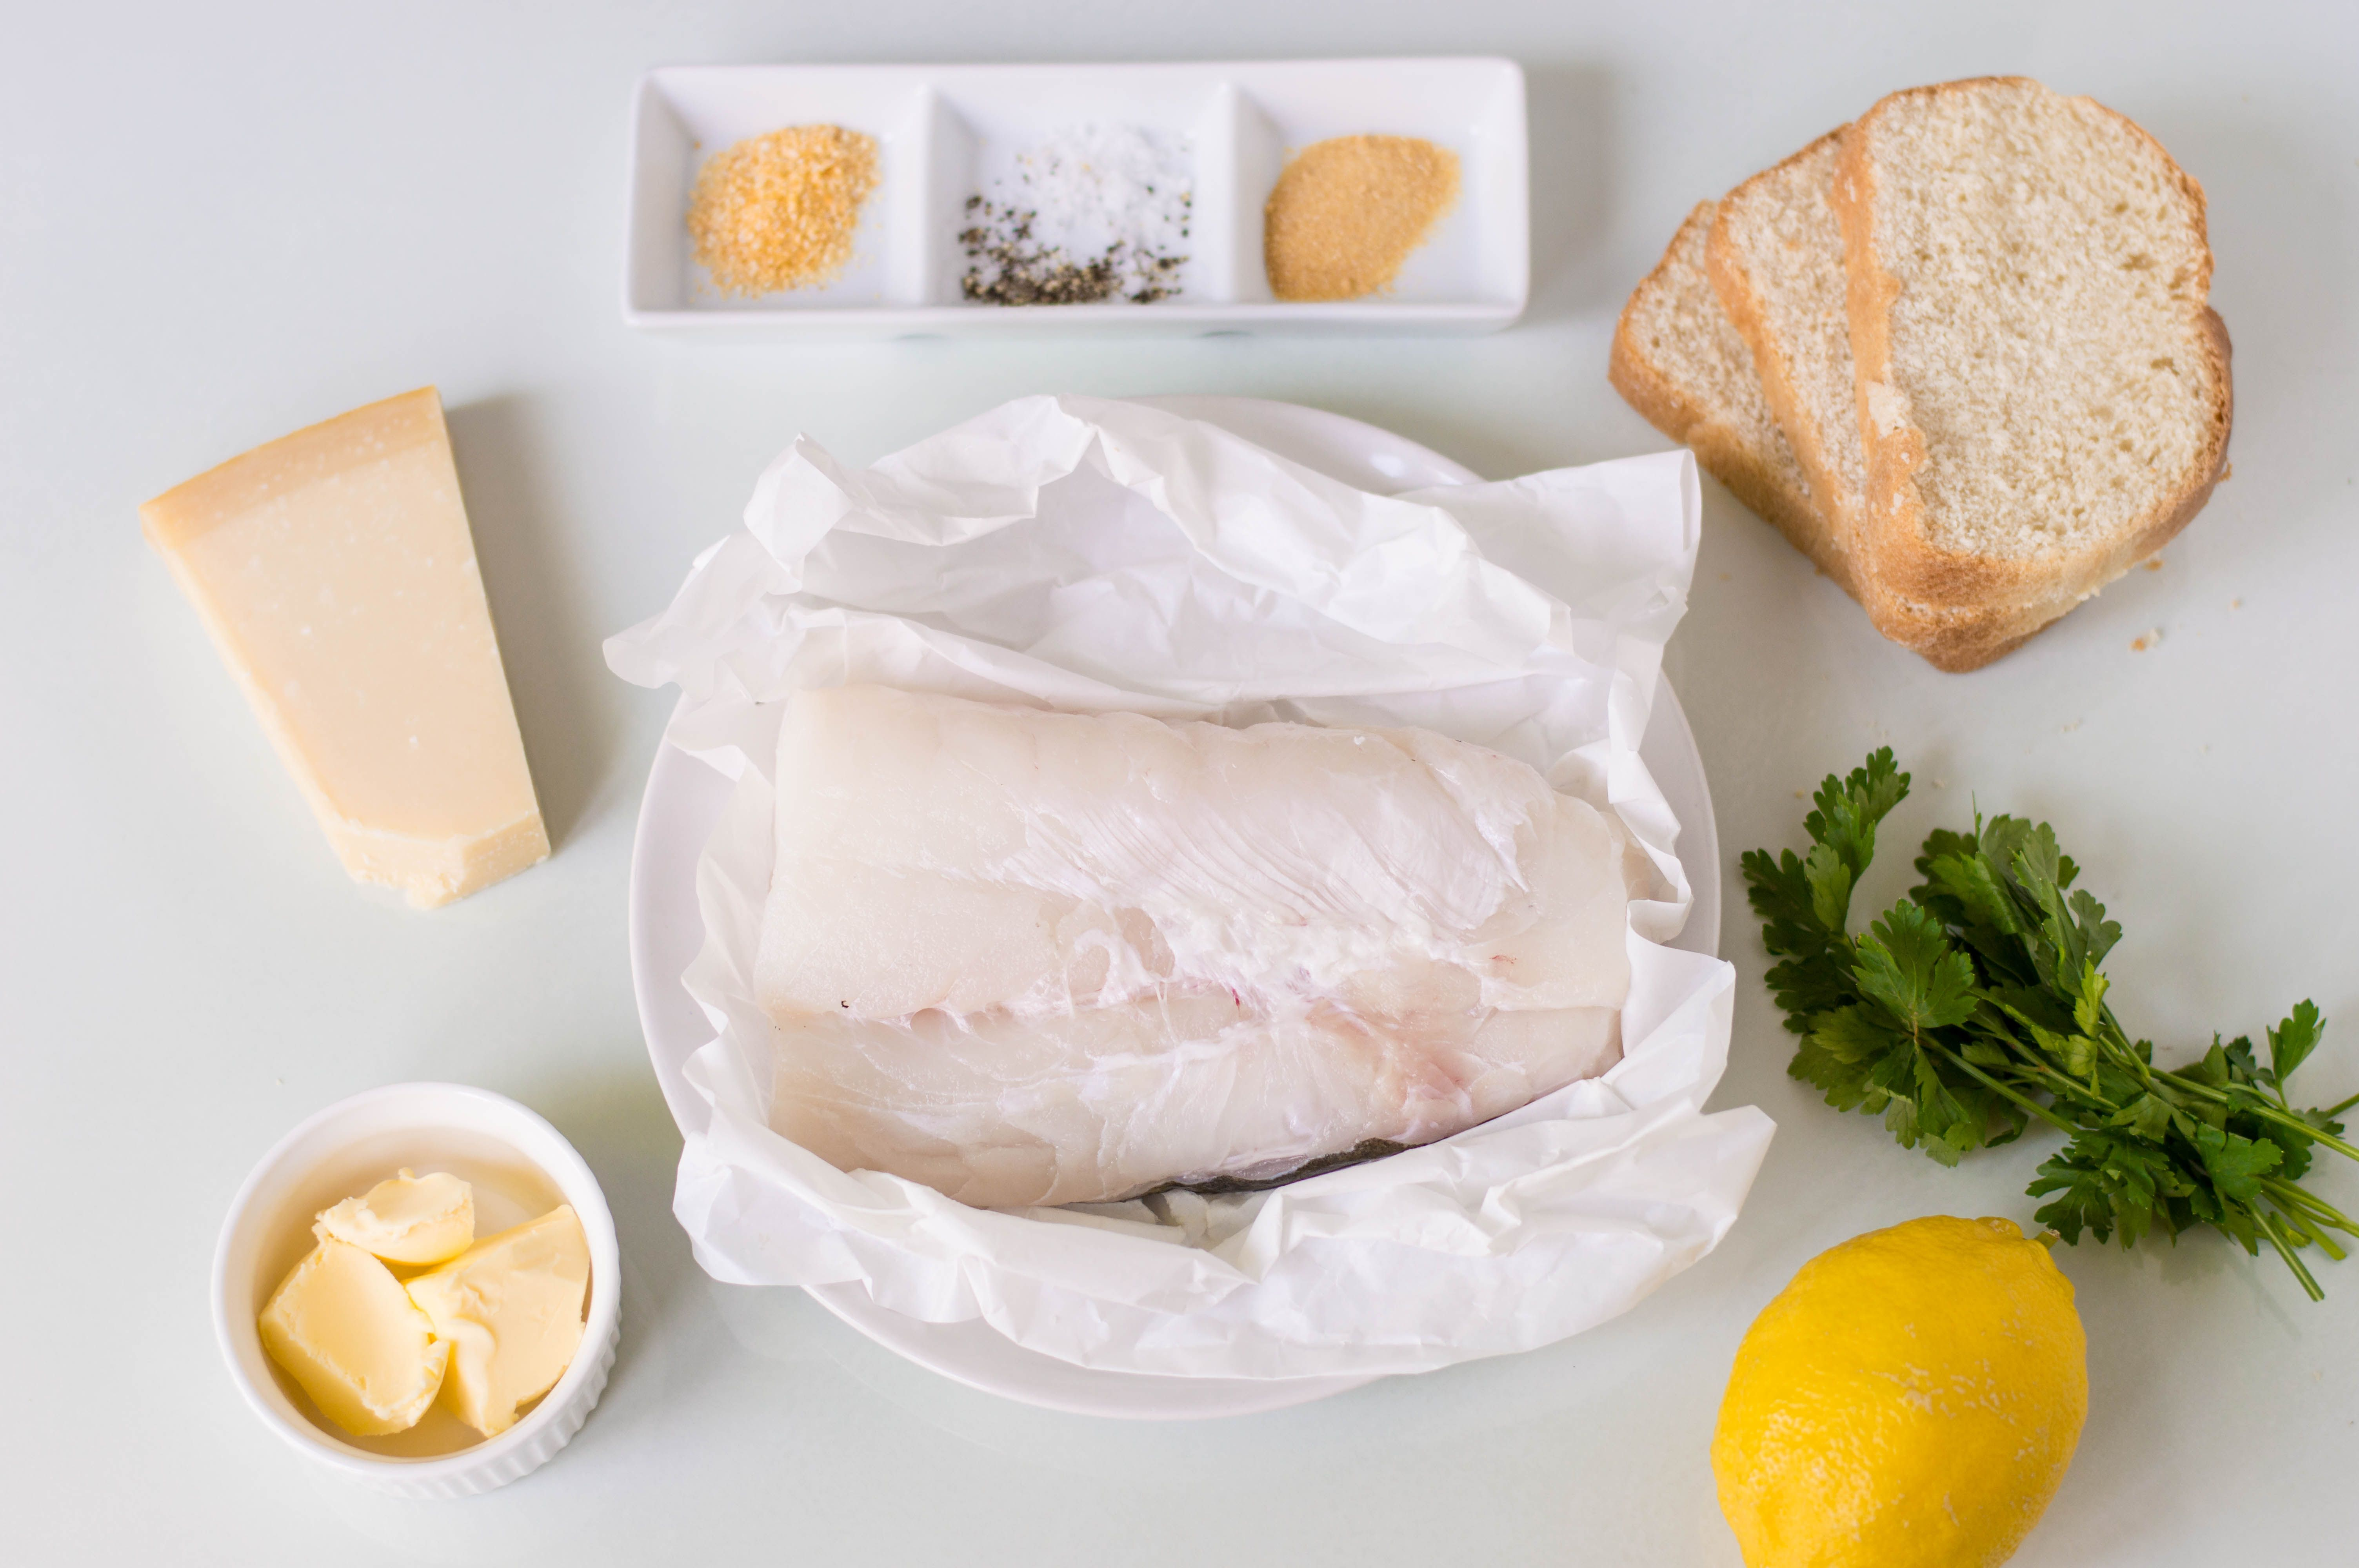 Ingredients for baked halibut with Parmesan topping